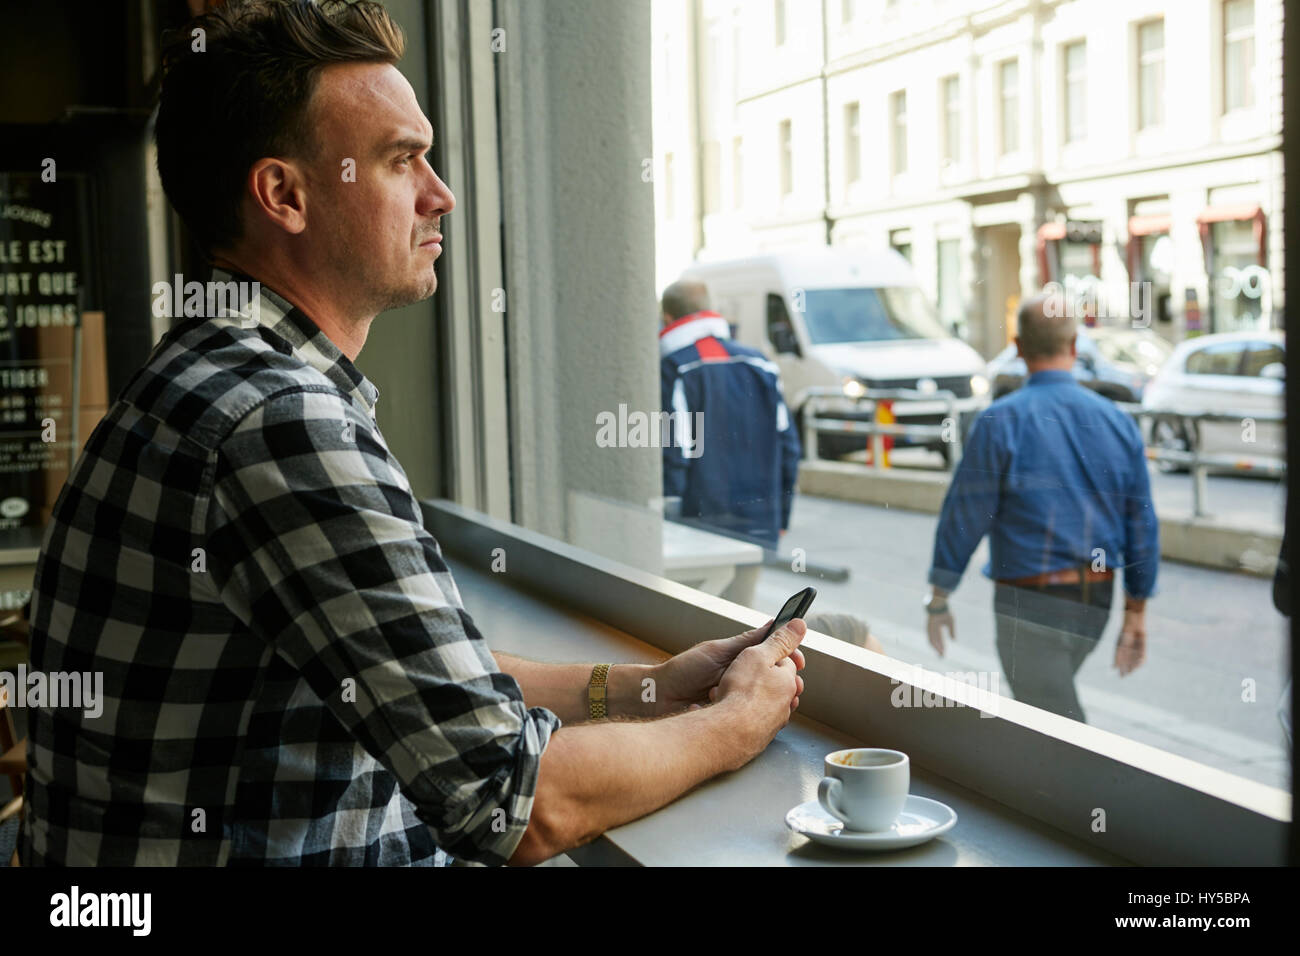 Sweden, Man holding cellphone and looking through window in cafe - Stock Image